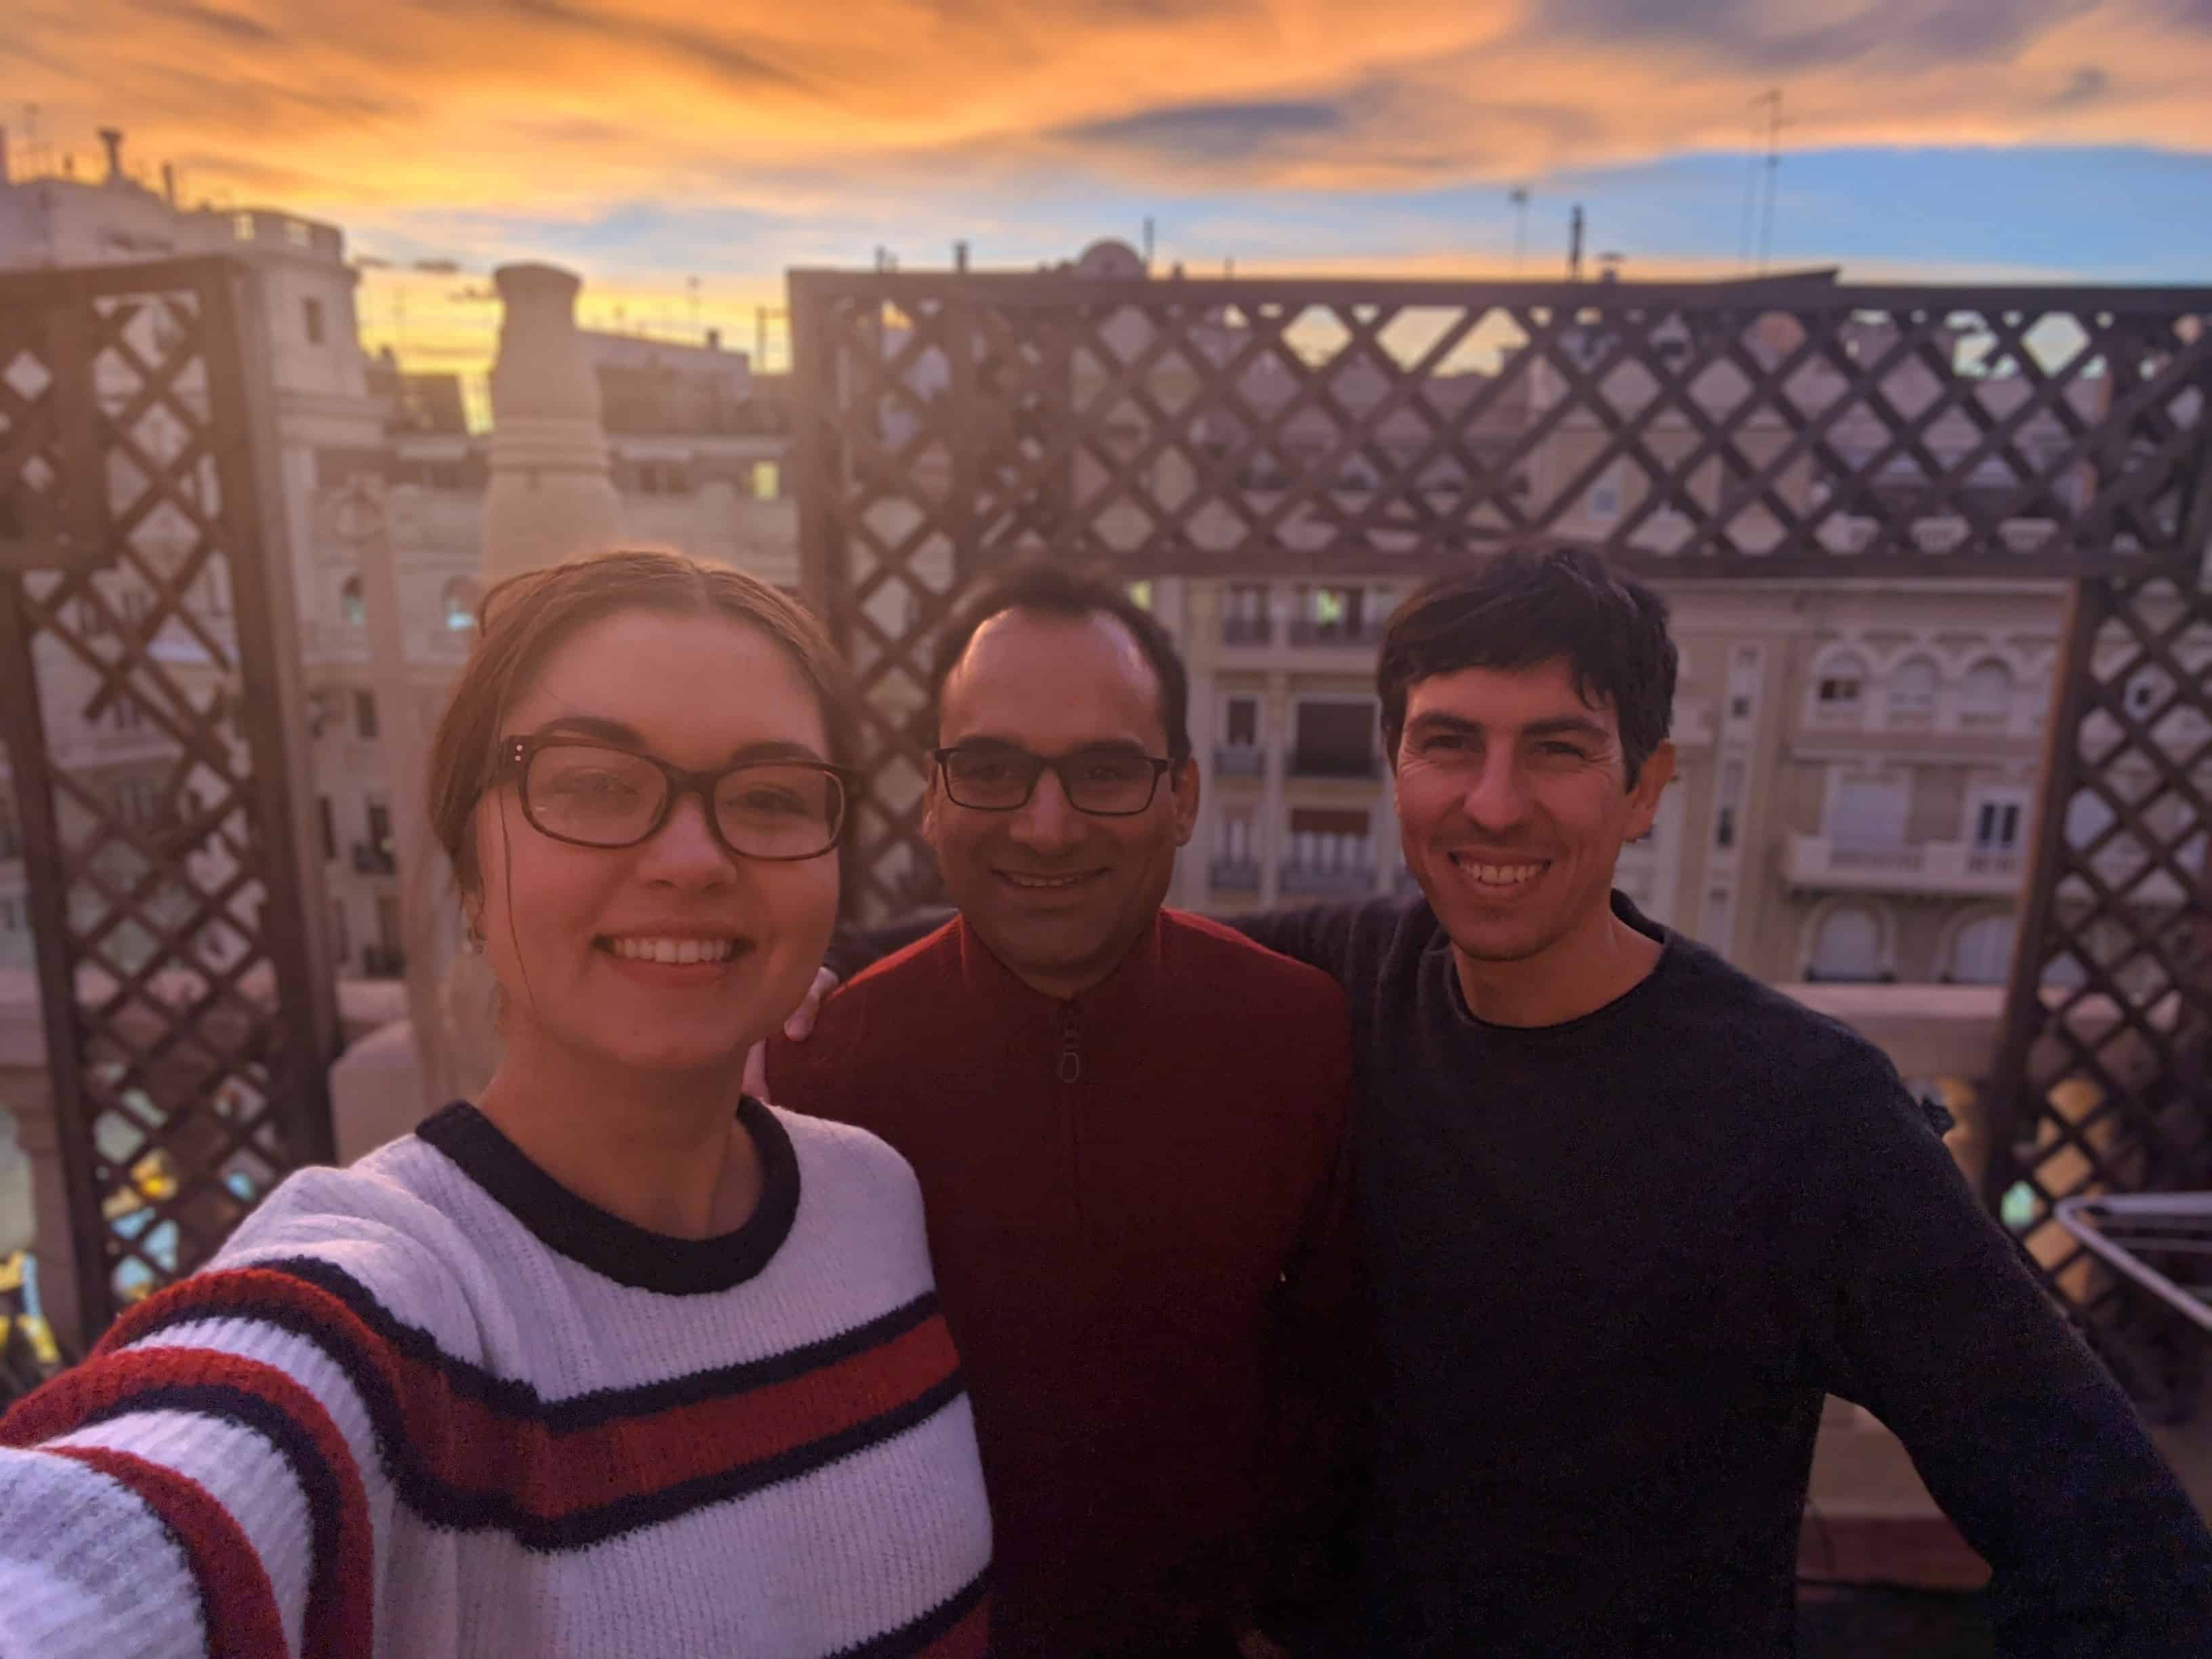 The Basepair team in Valencia, Spain. Left to right: Janneta (marketing), Amit (CEO), Blas (software).